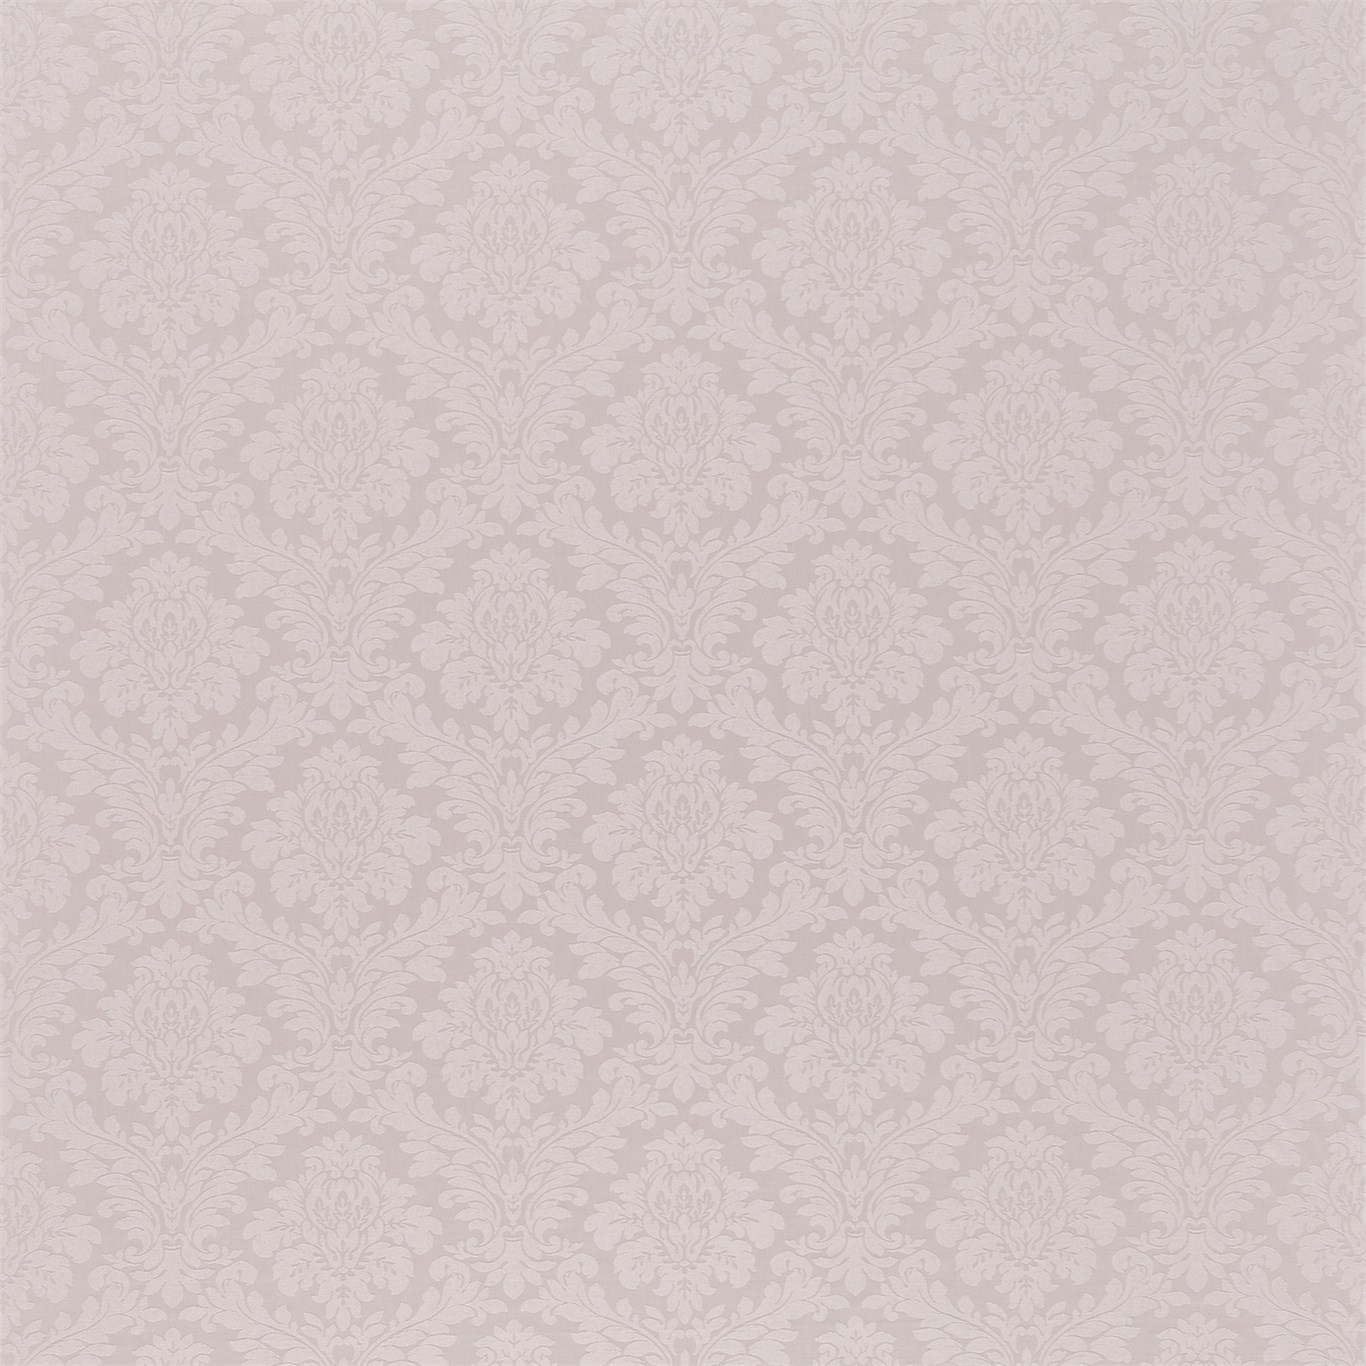 Image of Sanderson Lymington Damask Pale Lilac Fabric 232614